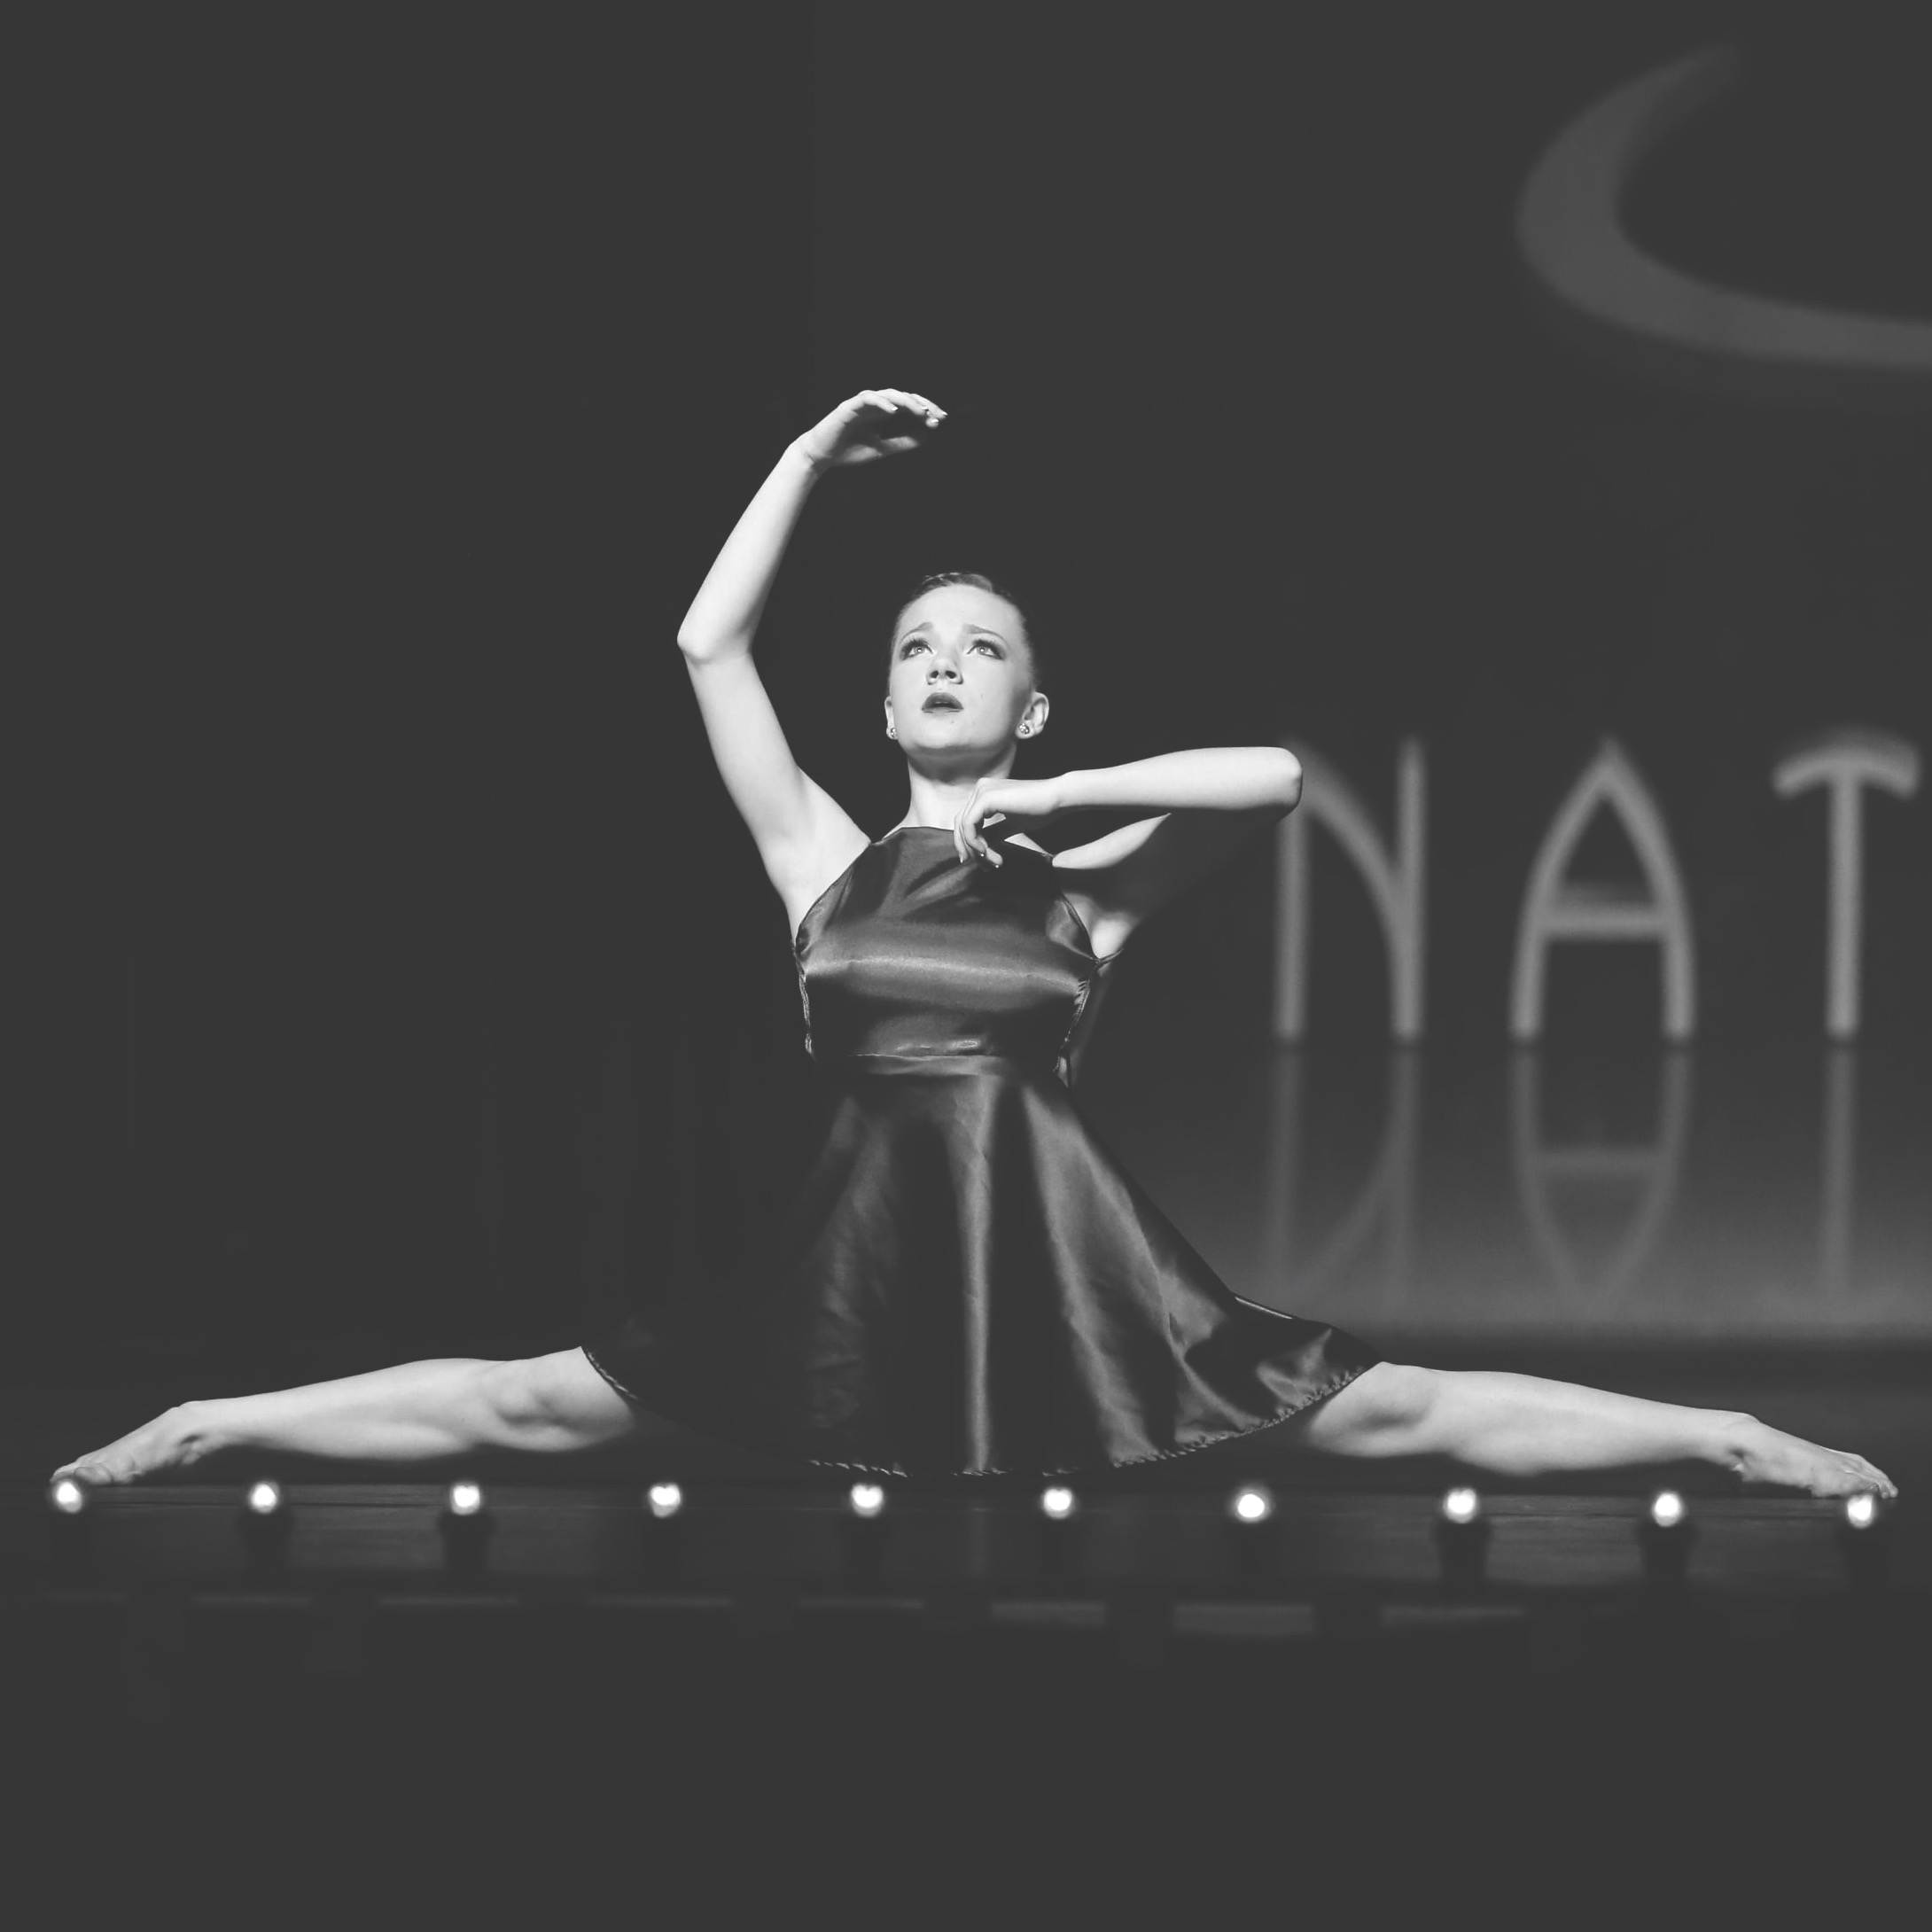 Contemporary  Contemporary blends elements of lyrical, jazz, and modern dance. It is a raw, organic, and emotional form of dancing with a strong technical foundation. This style emphasizes musicality, as it contrasts both smooth and staccato movements.